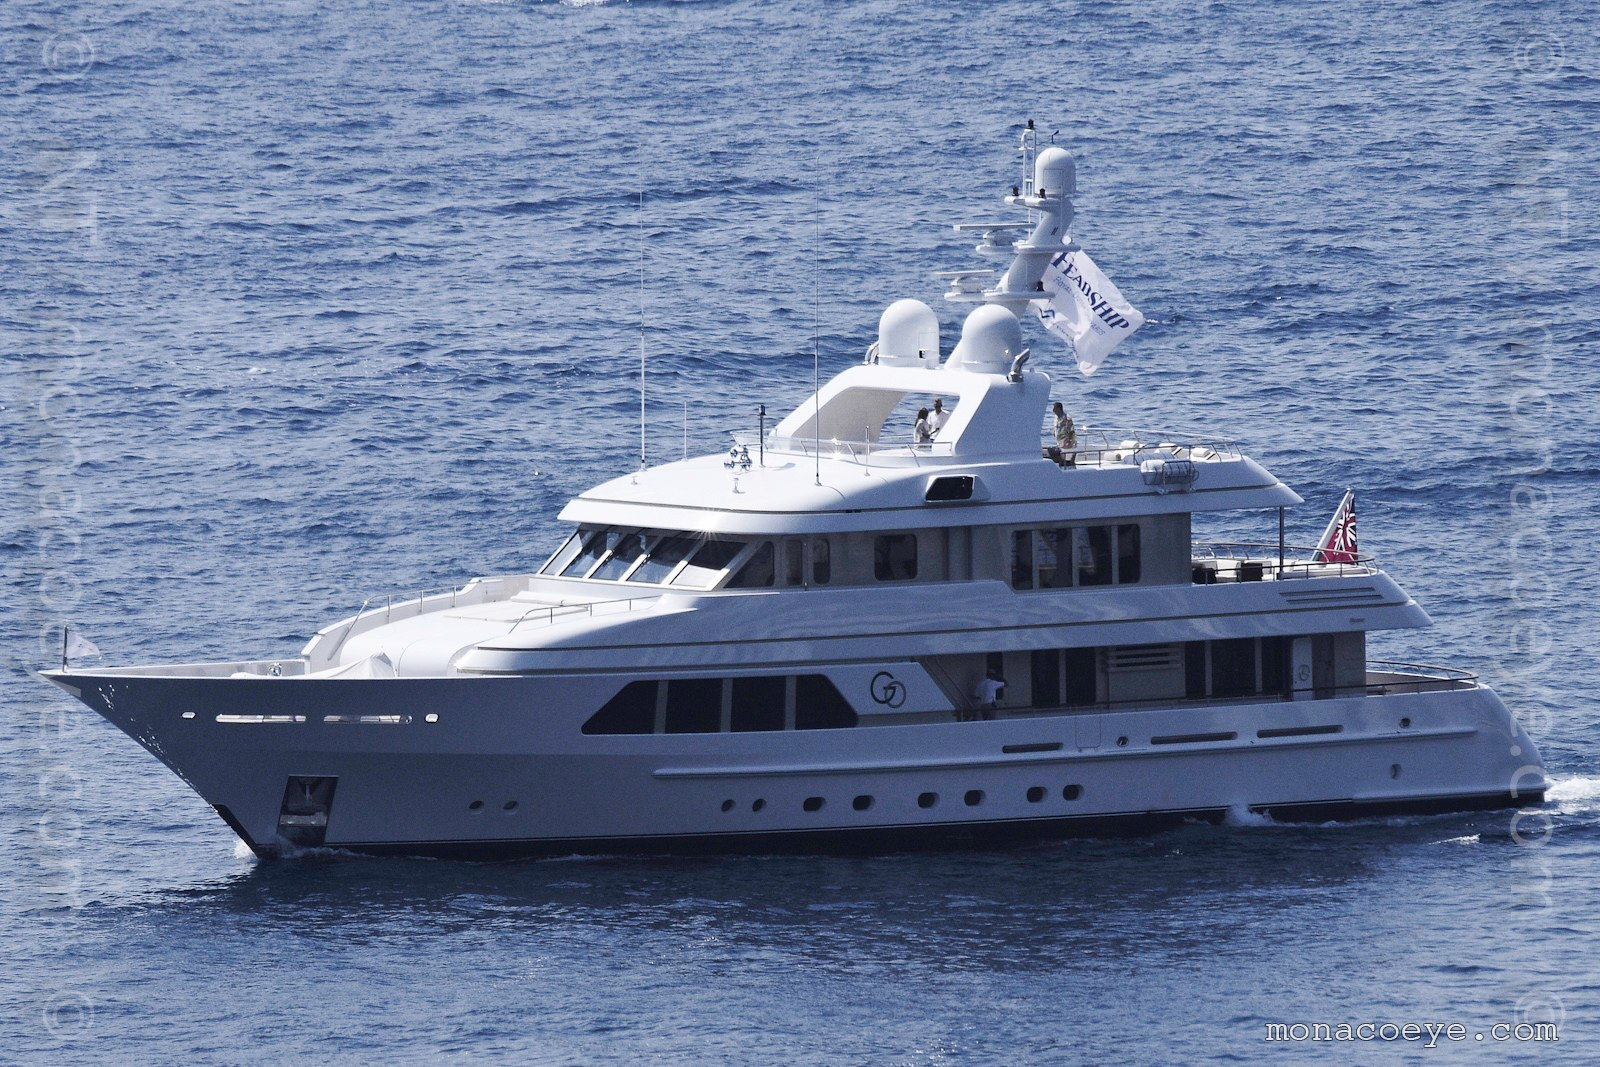 Go yacht. Built by Feadship, delivered in 2010, 39 metres, build number 678